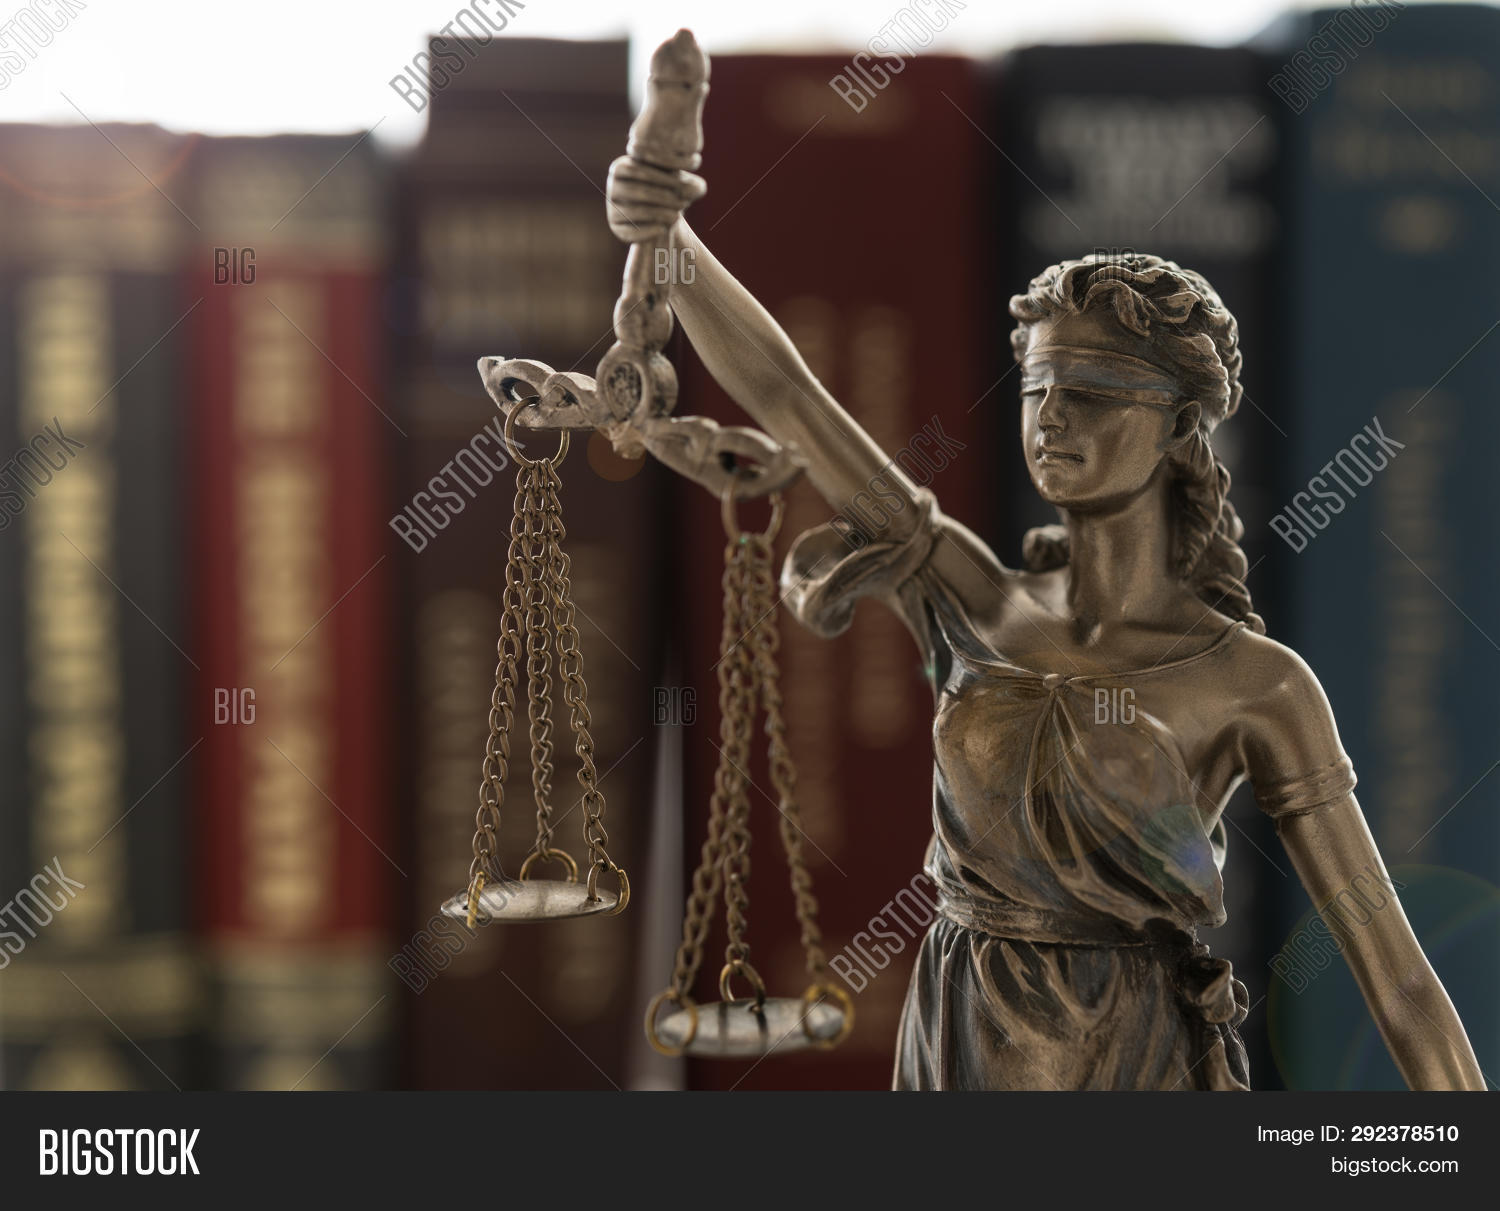 advice,attorney,background,balance,barrister,book,civil,concept,constitution,counselor,court,courthouse,courtroom,criminal,enact,firm,government,judge,judgement,jurisdiction,jurisprudence,justice,lady,law,lawyer,legal,legally,legislate,legislation,litigation,rights,rule,scale,verdict